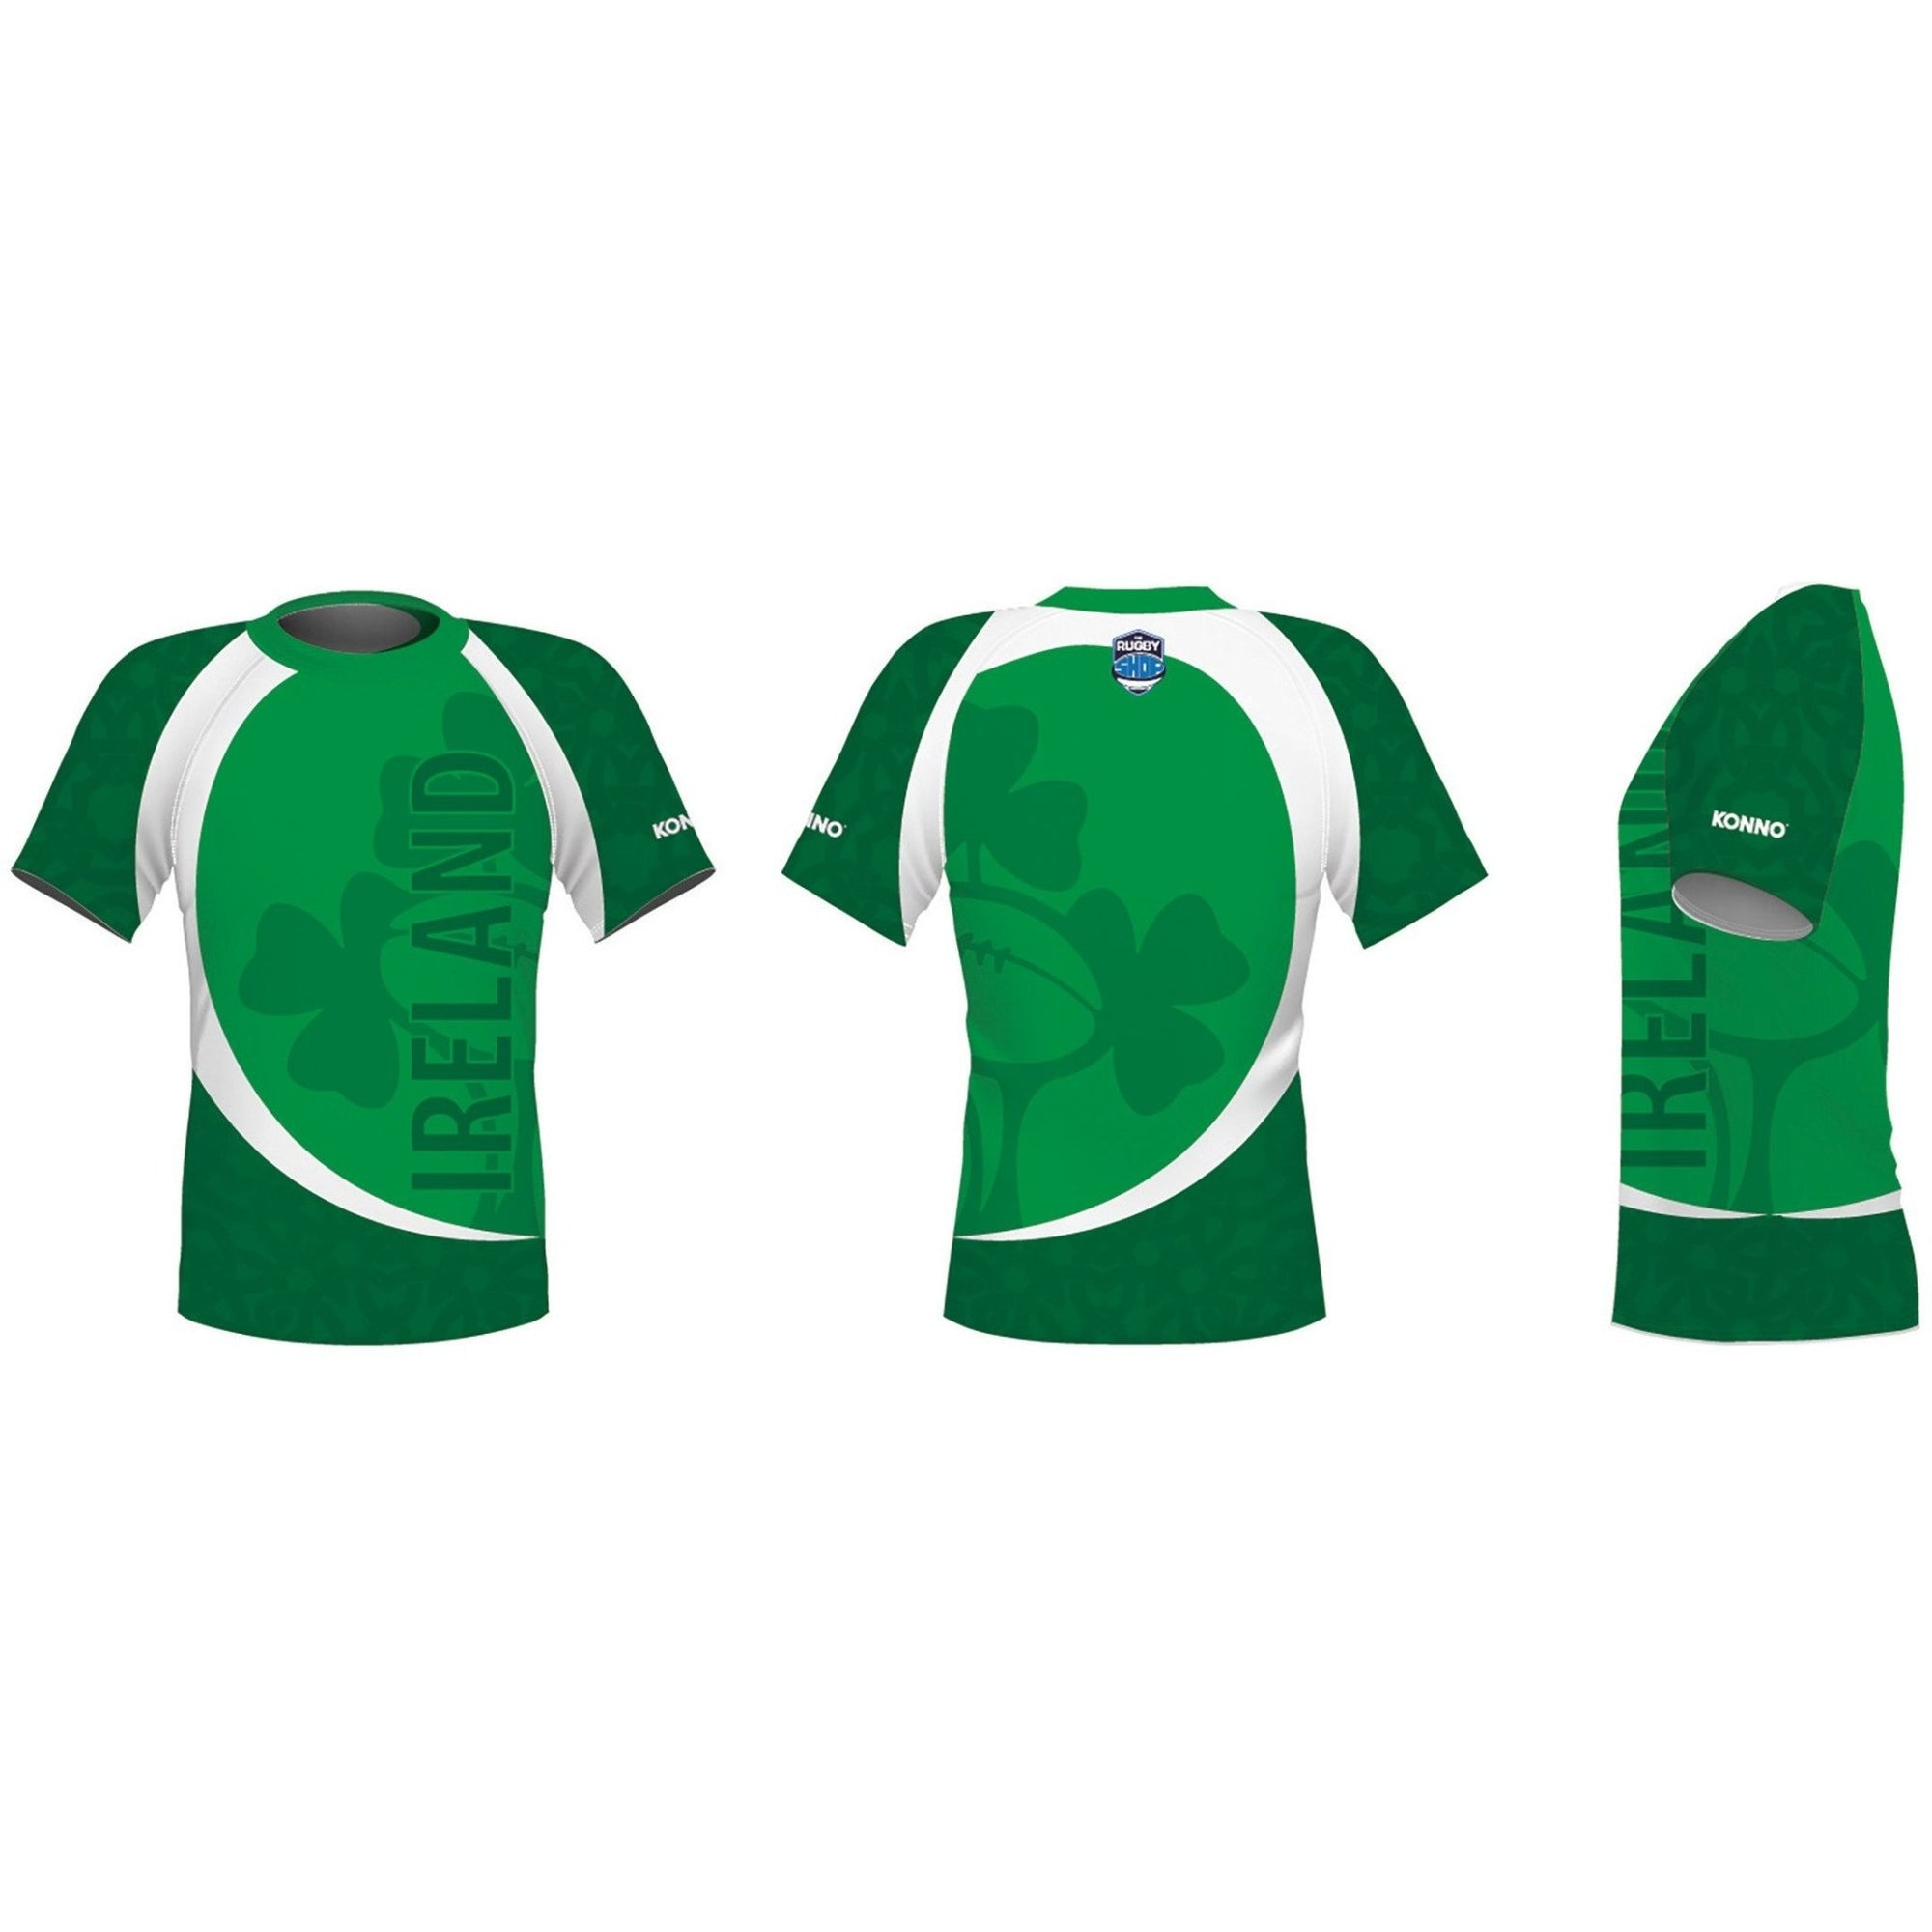 KONNO International Supporter Tee - Ireland - www.therugbyshop.com www.therugbyshop.com KONNO TEE KONNO International Supporter Tee - Ireland